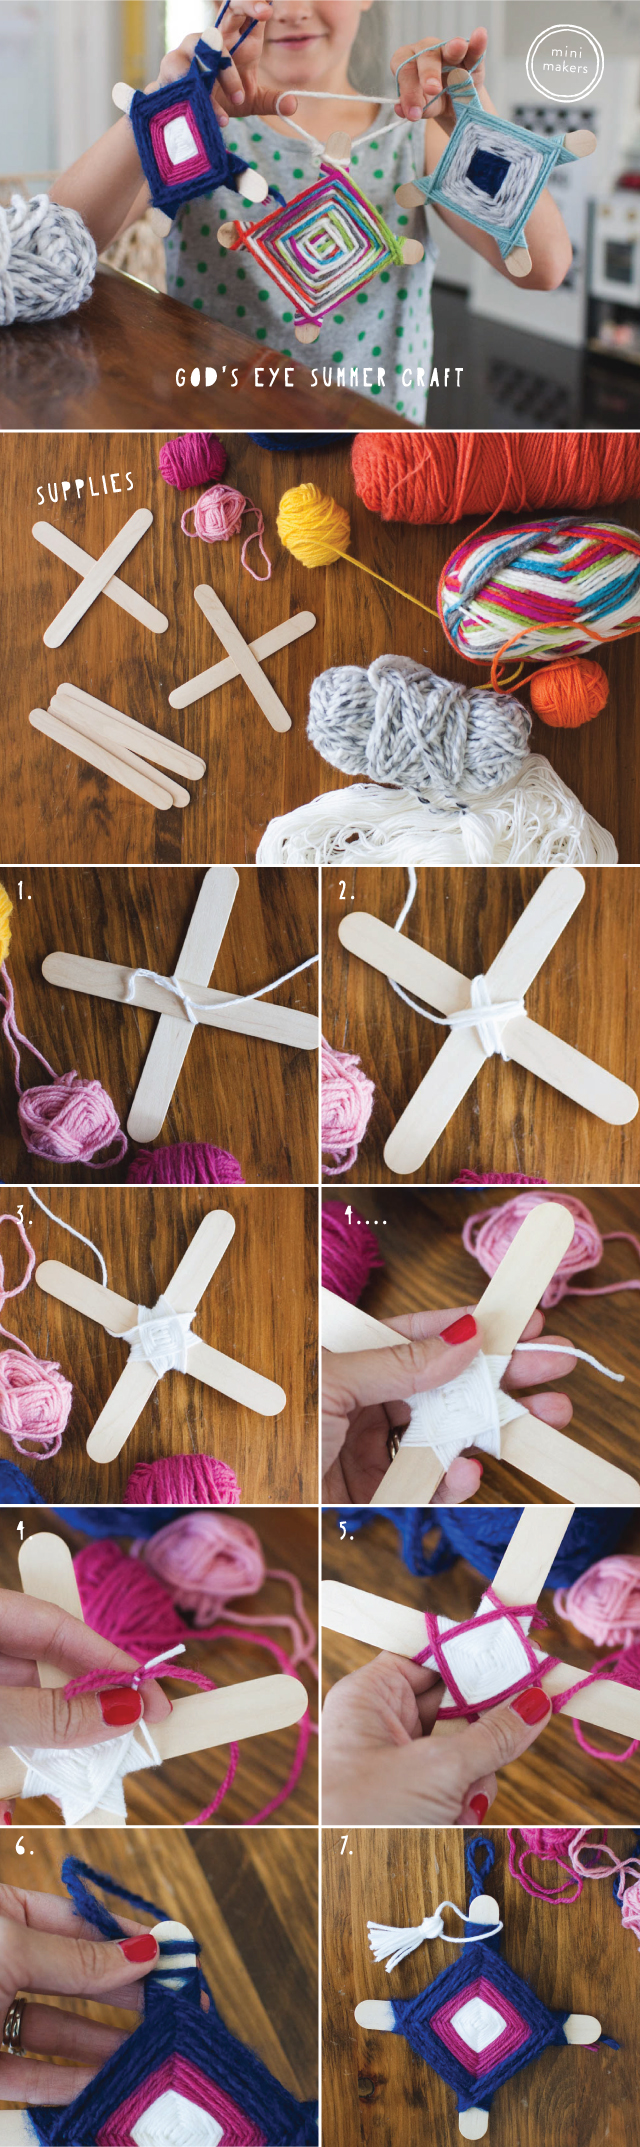 mini-makers-diy-god's-eye-yarn-craft